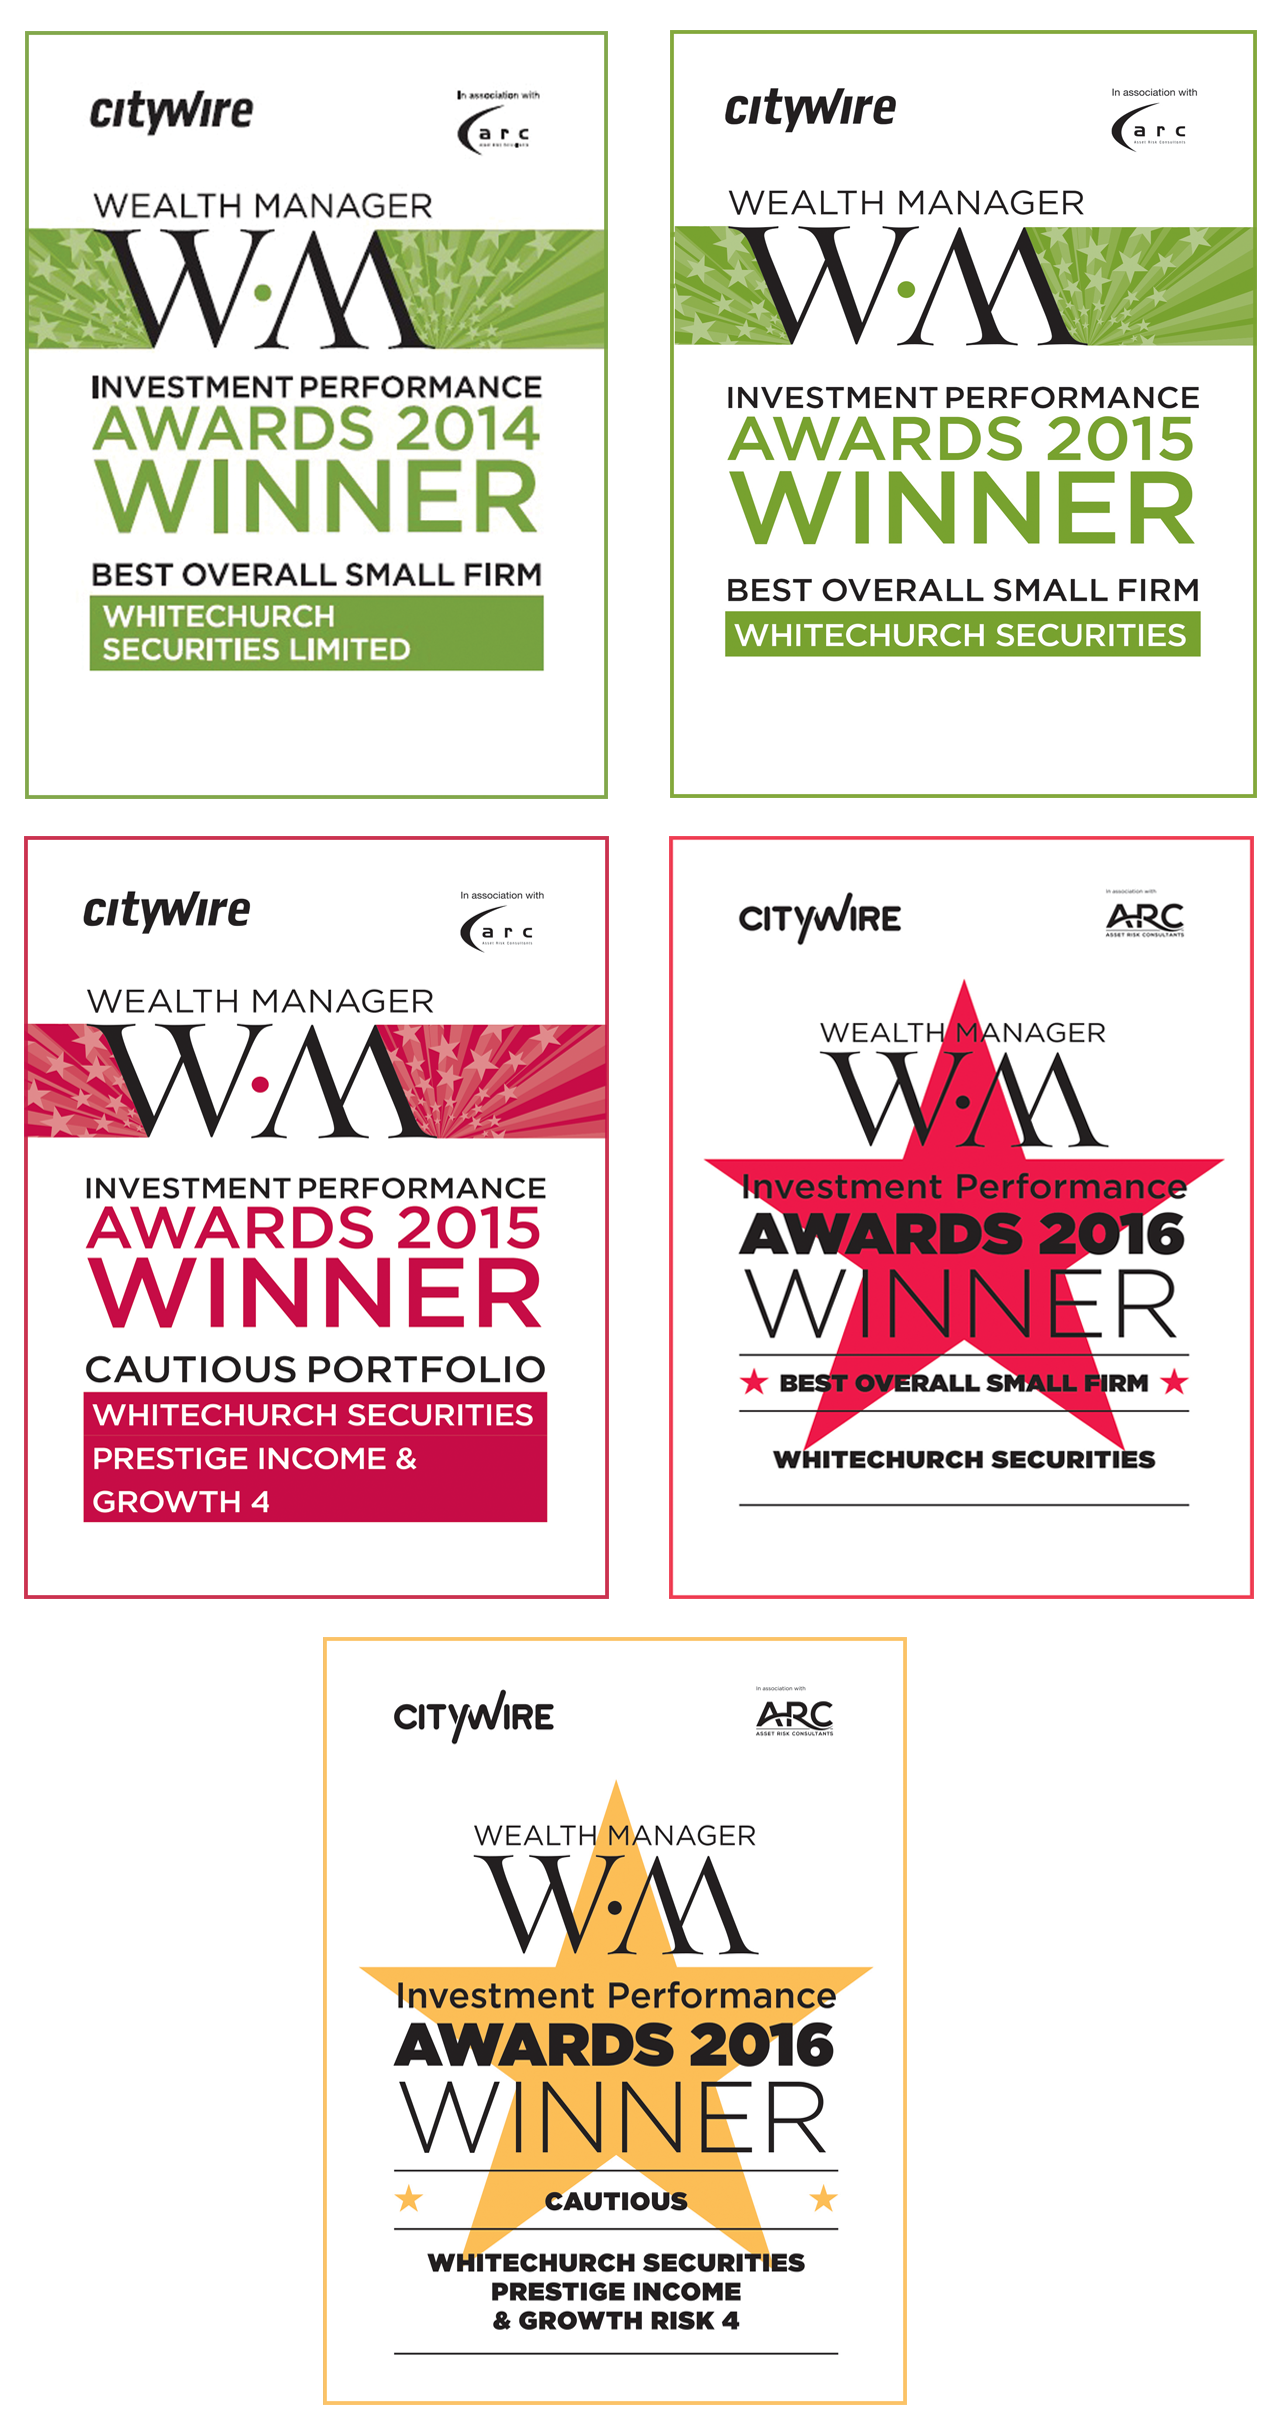 CITYWIRE AWARDS